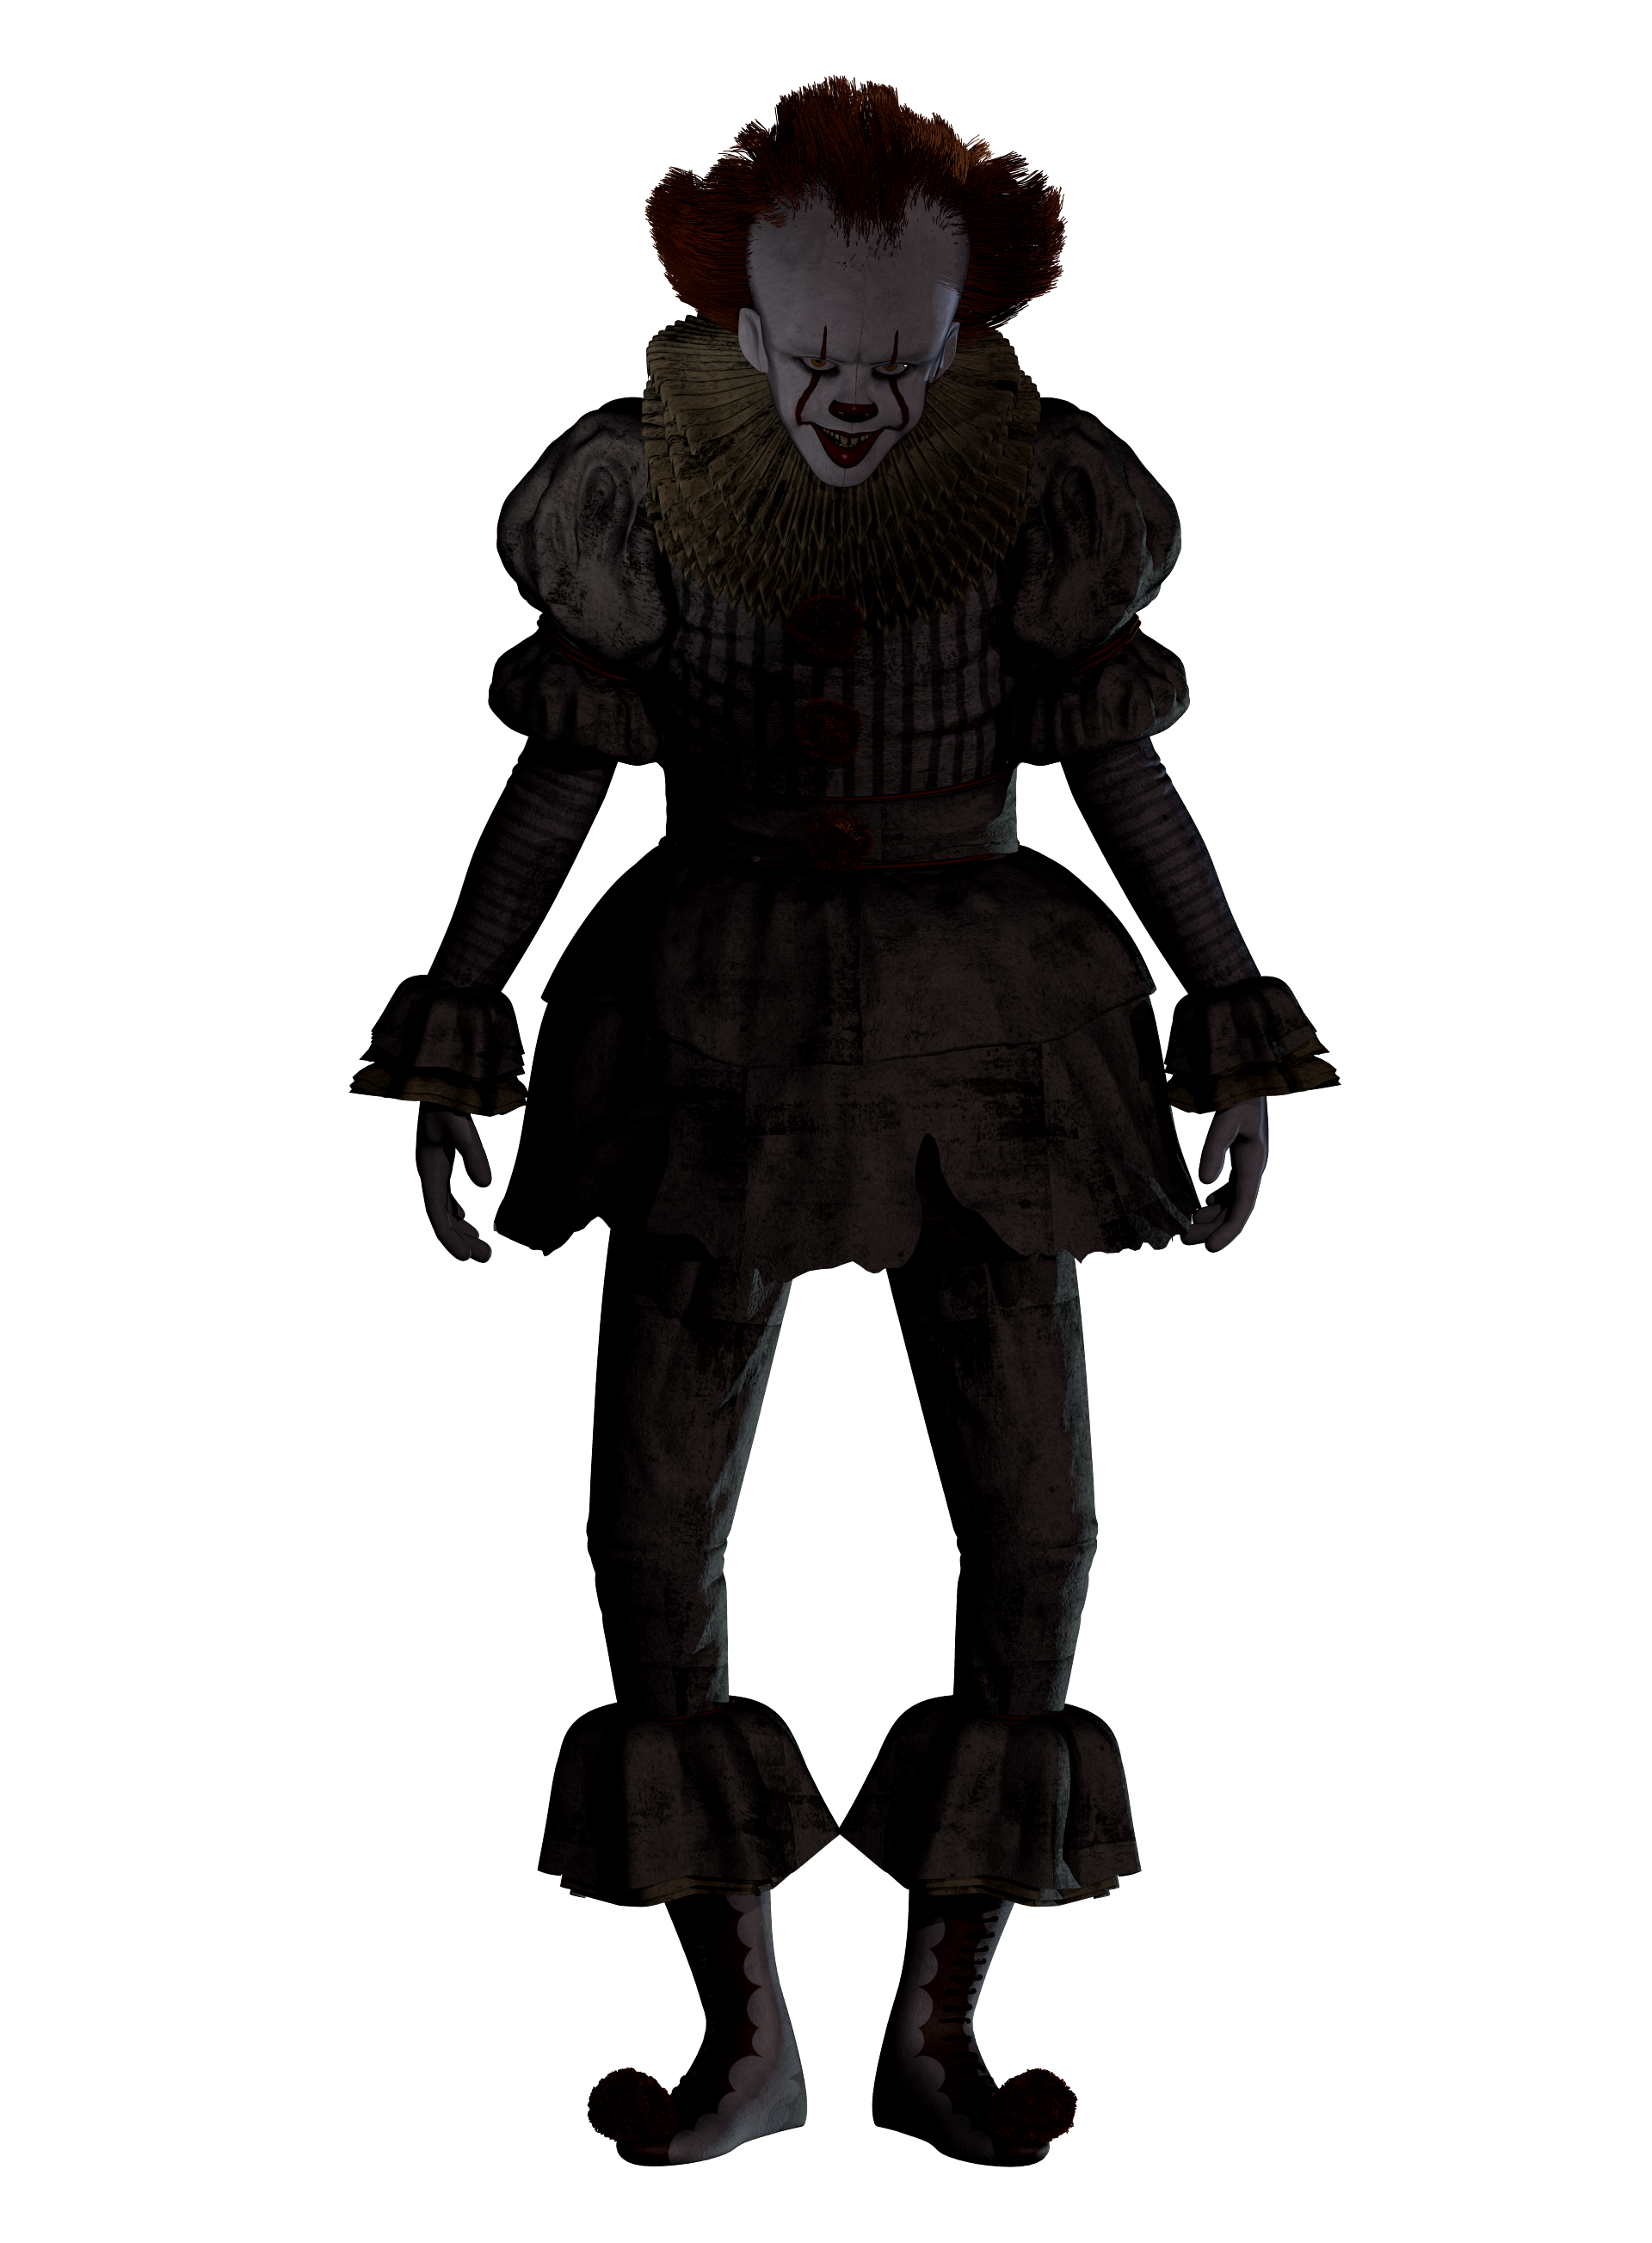 pennywise clown png